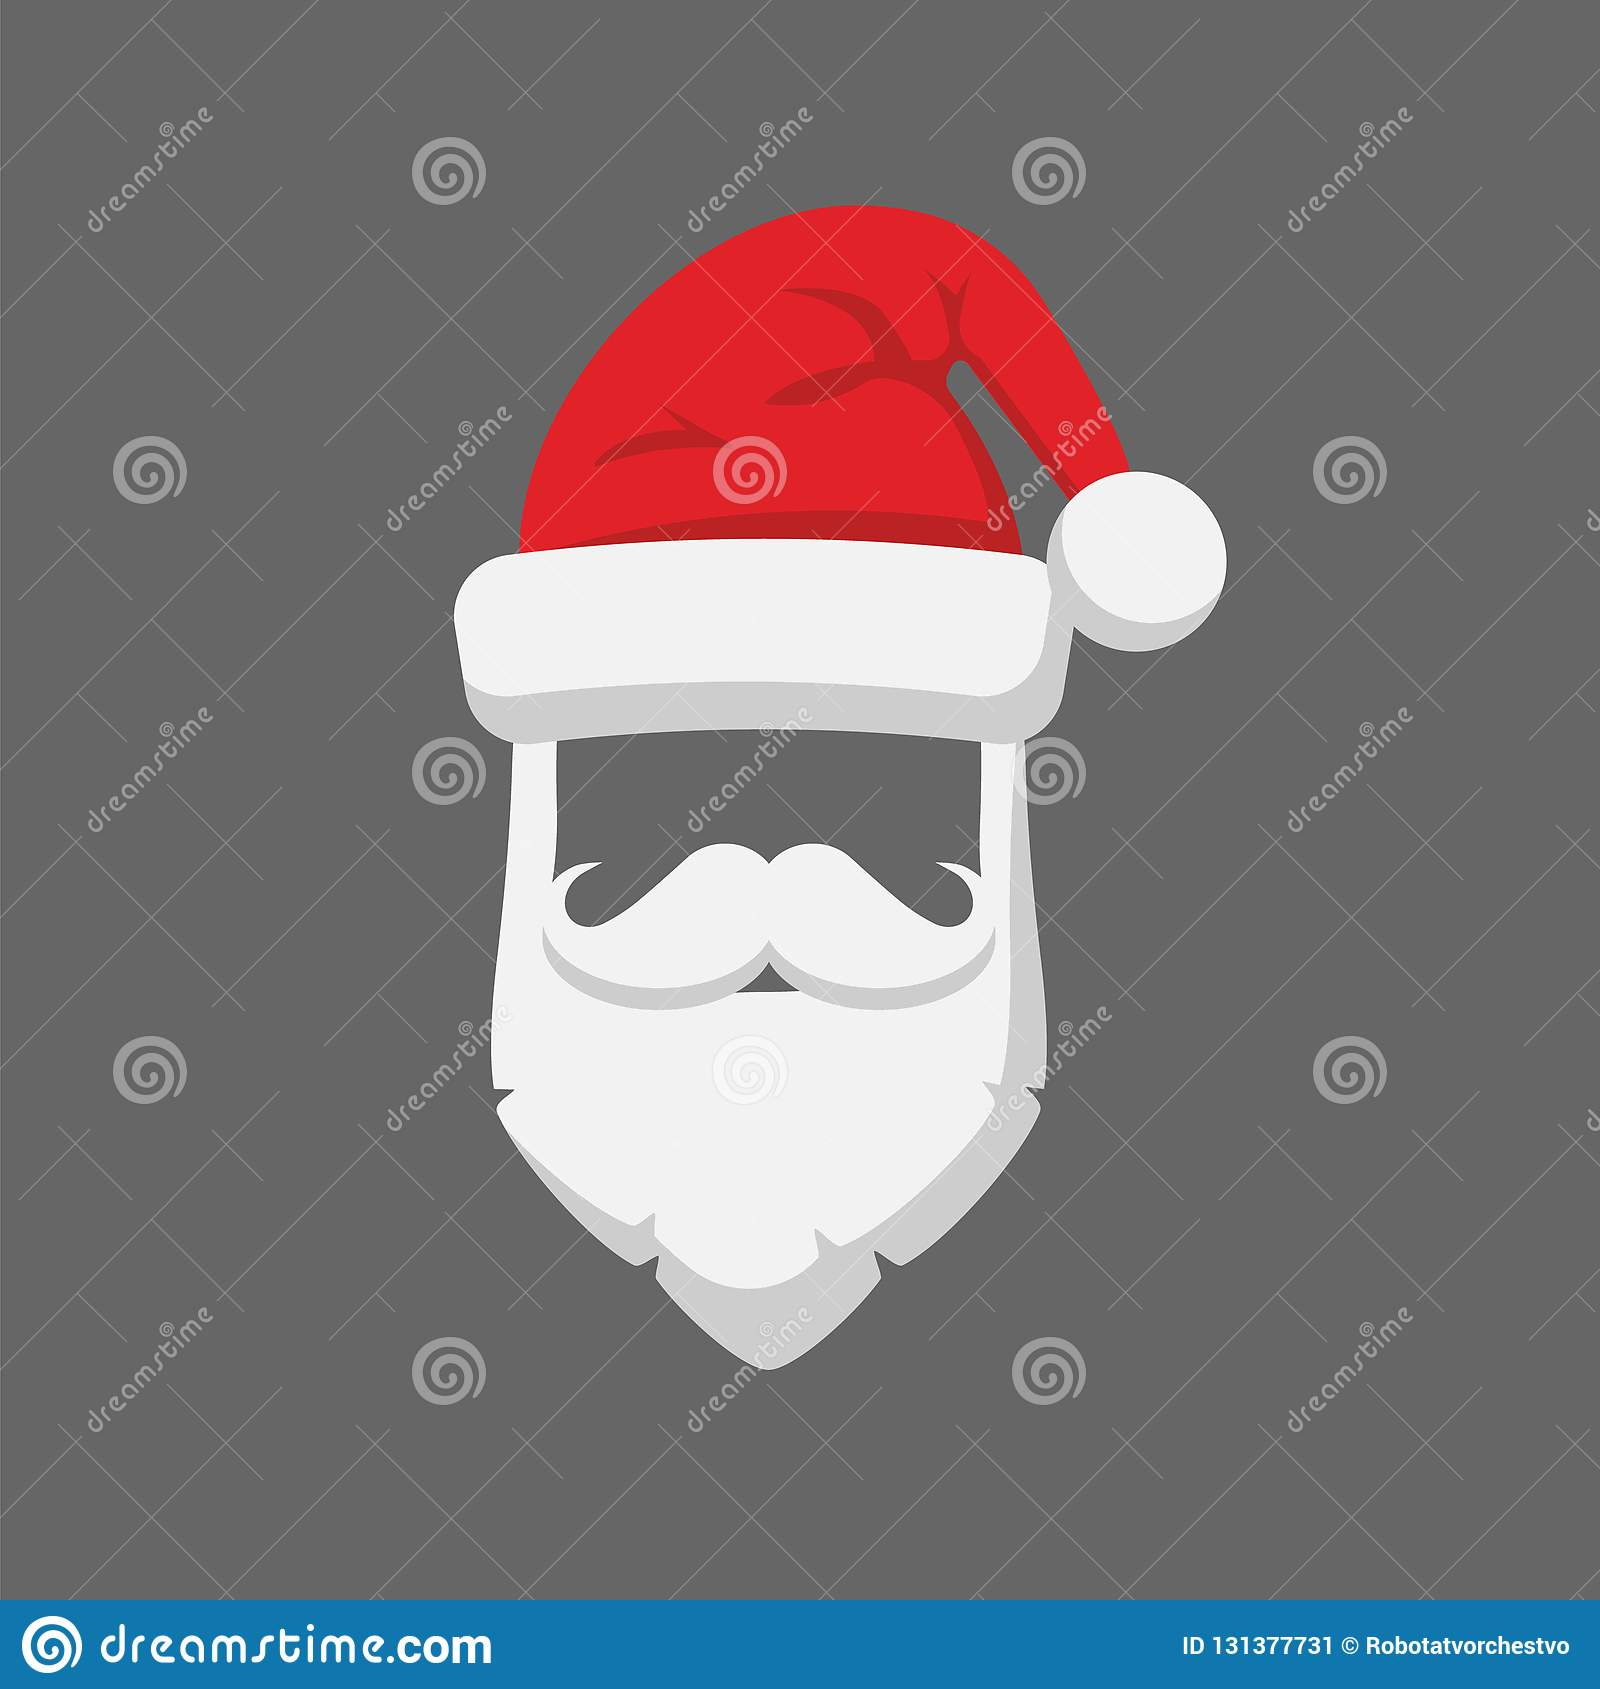 santa claus hat and beard template icon isolated on white background